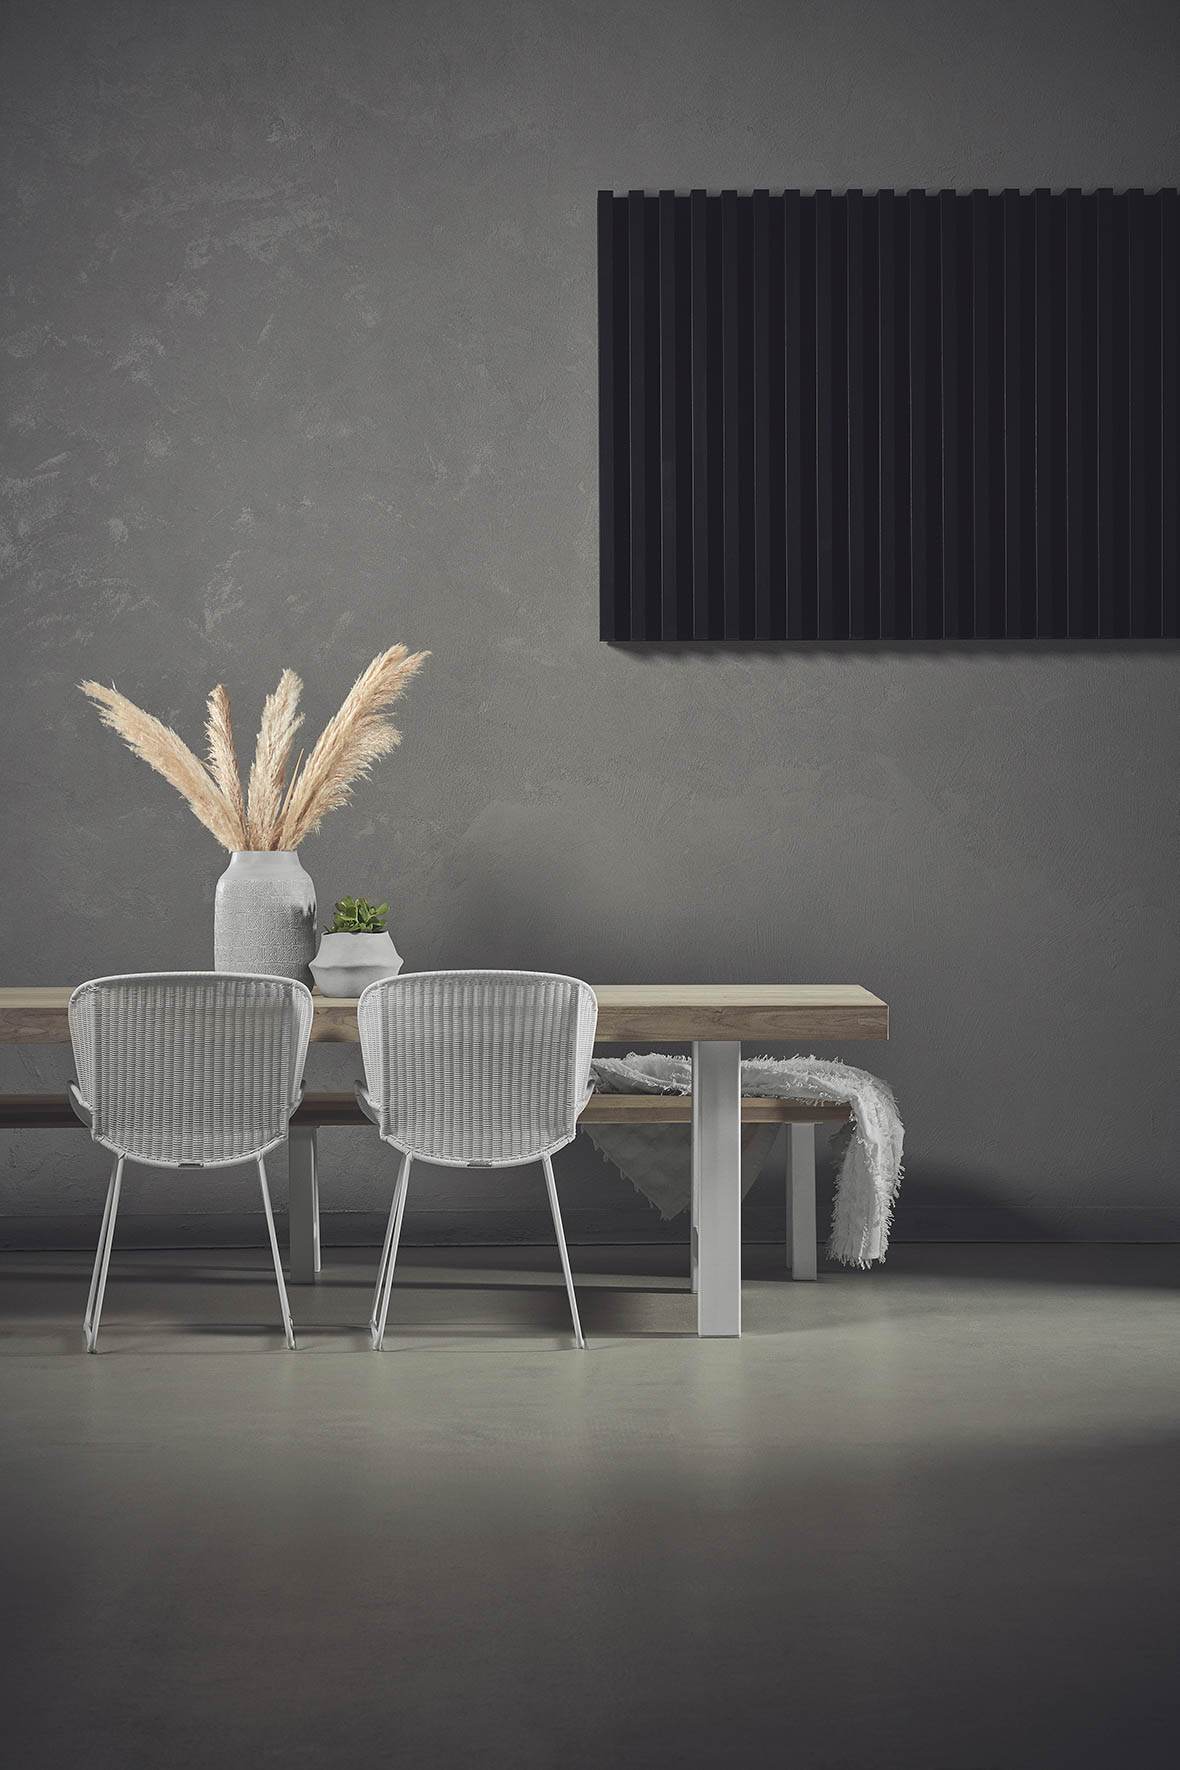 Furniture Gallery Dining-Chairs-Benches-Stools granada-butterfly-closed-weave-dining-chair-01